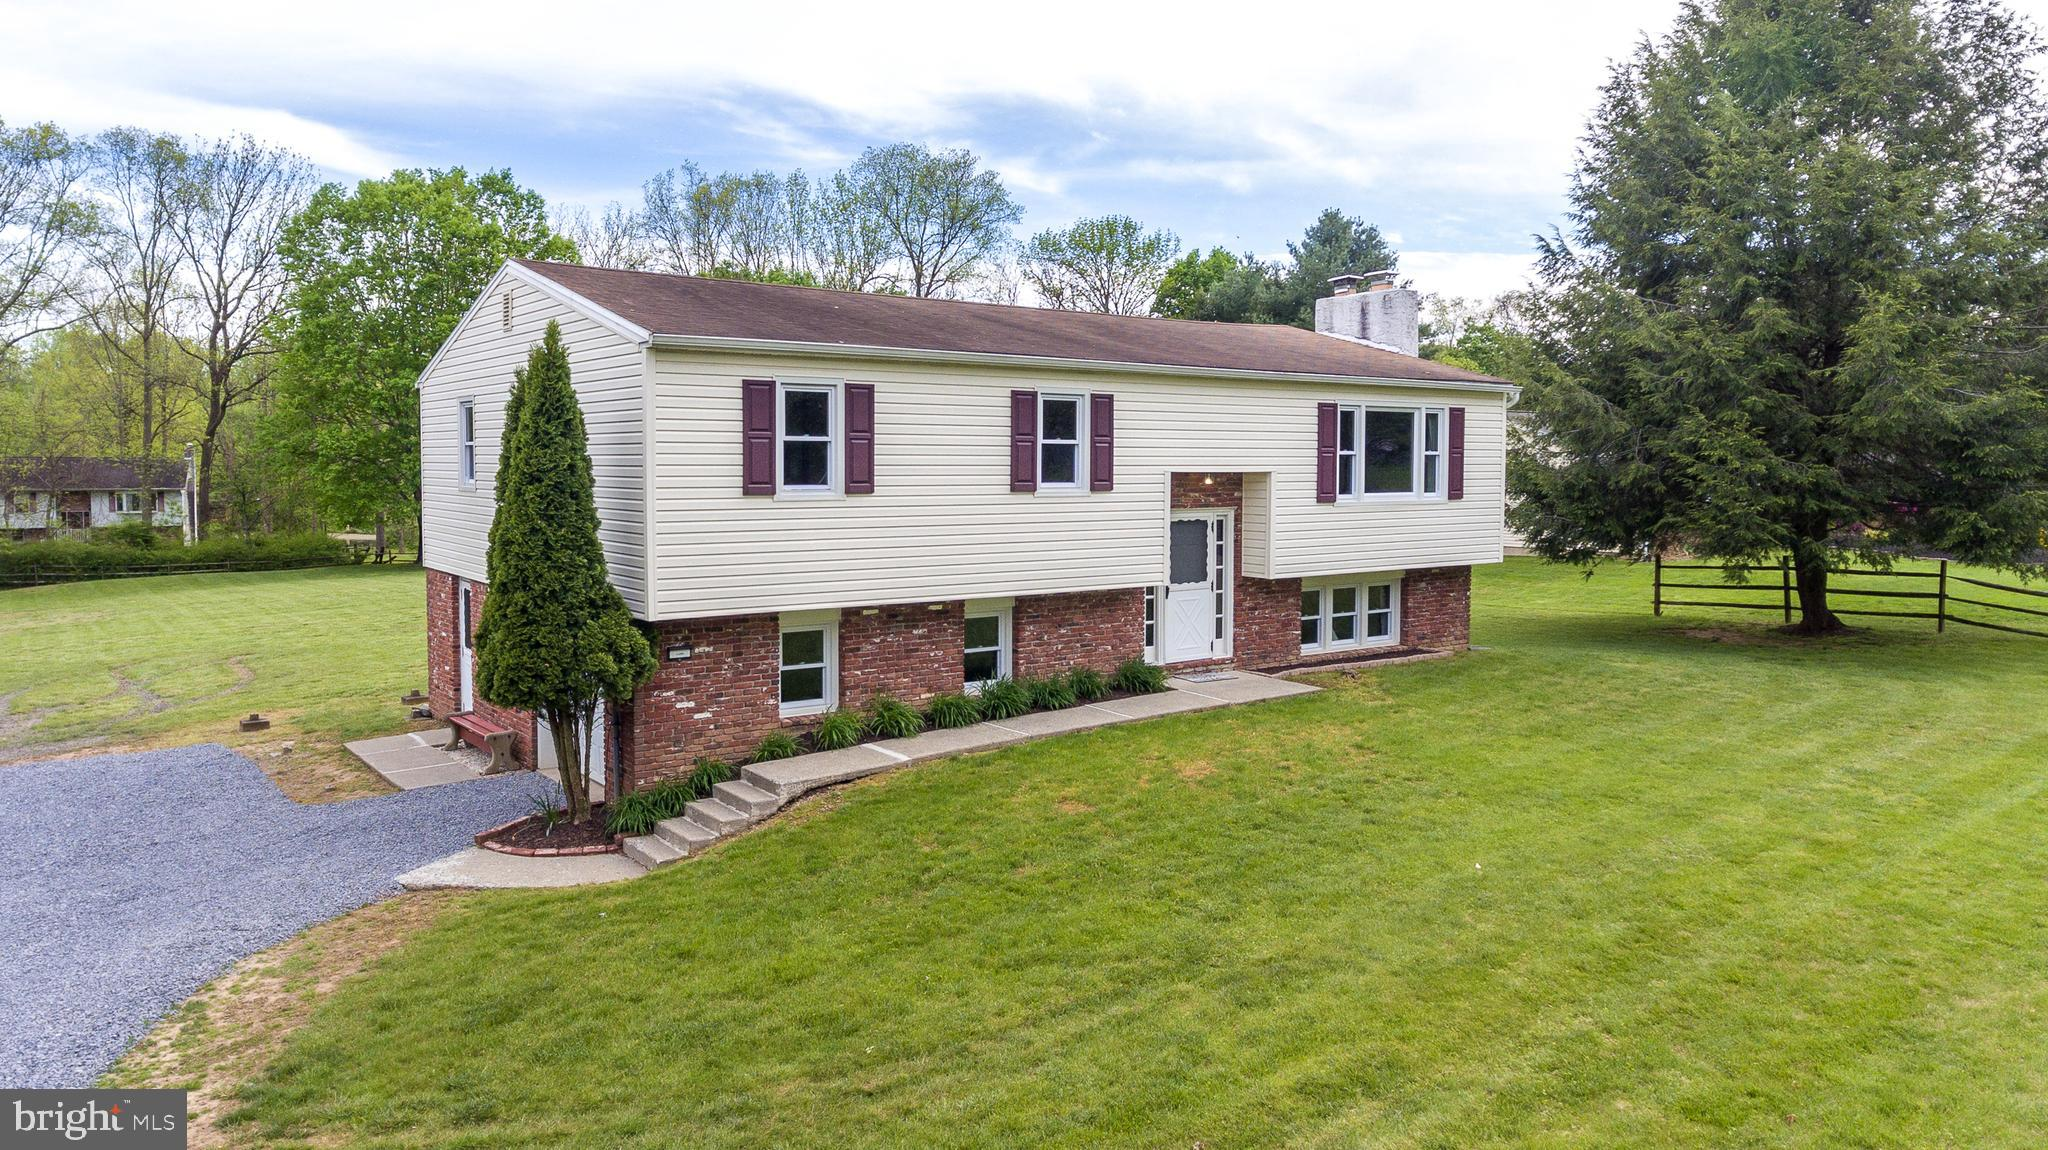 3398 Route 212, Riegelsville, PA 18077